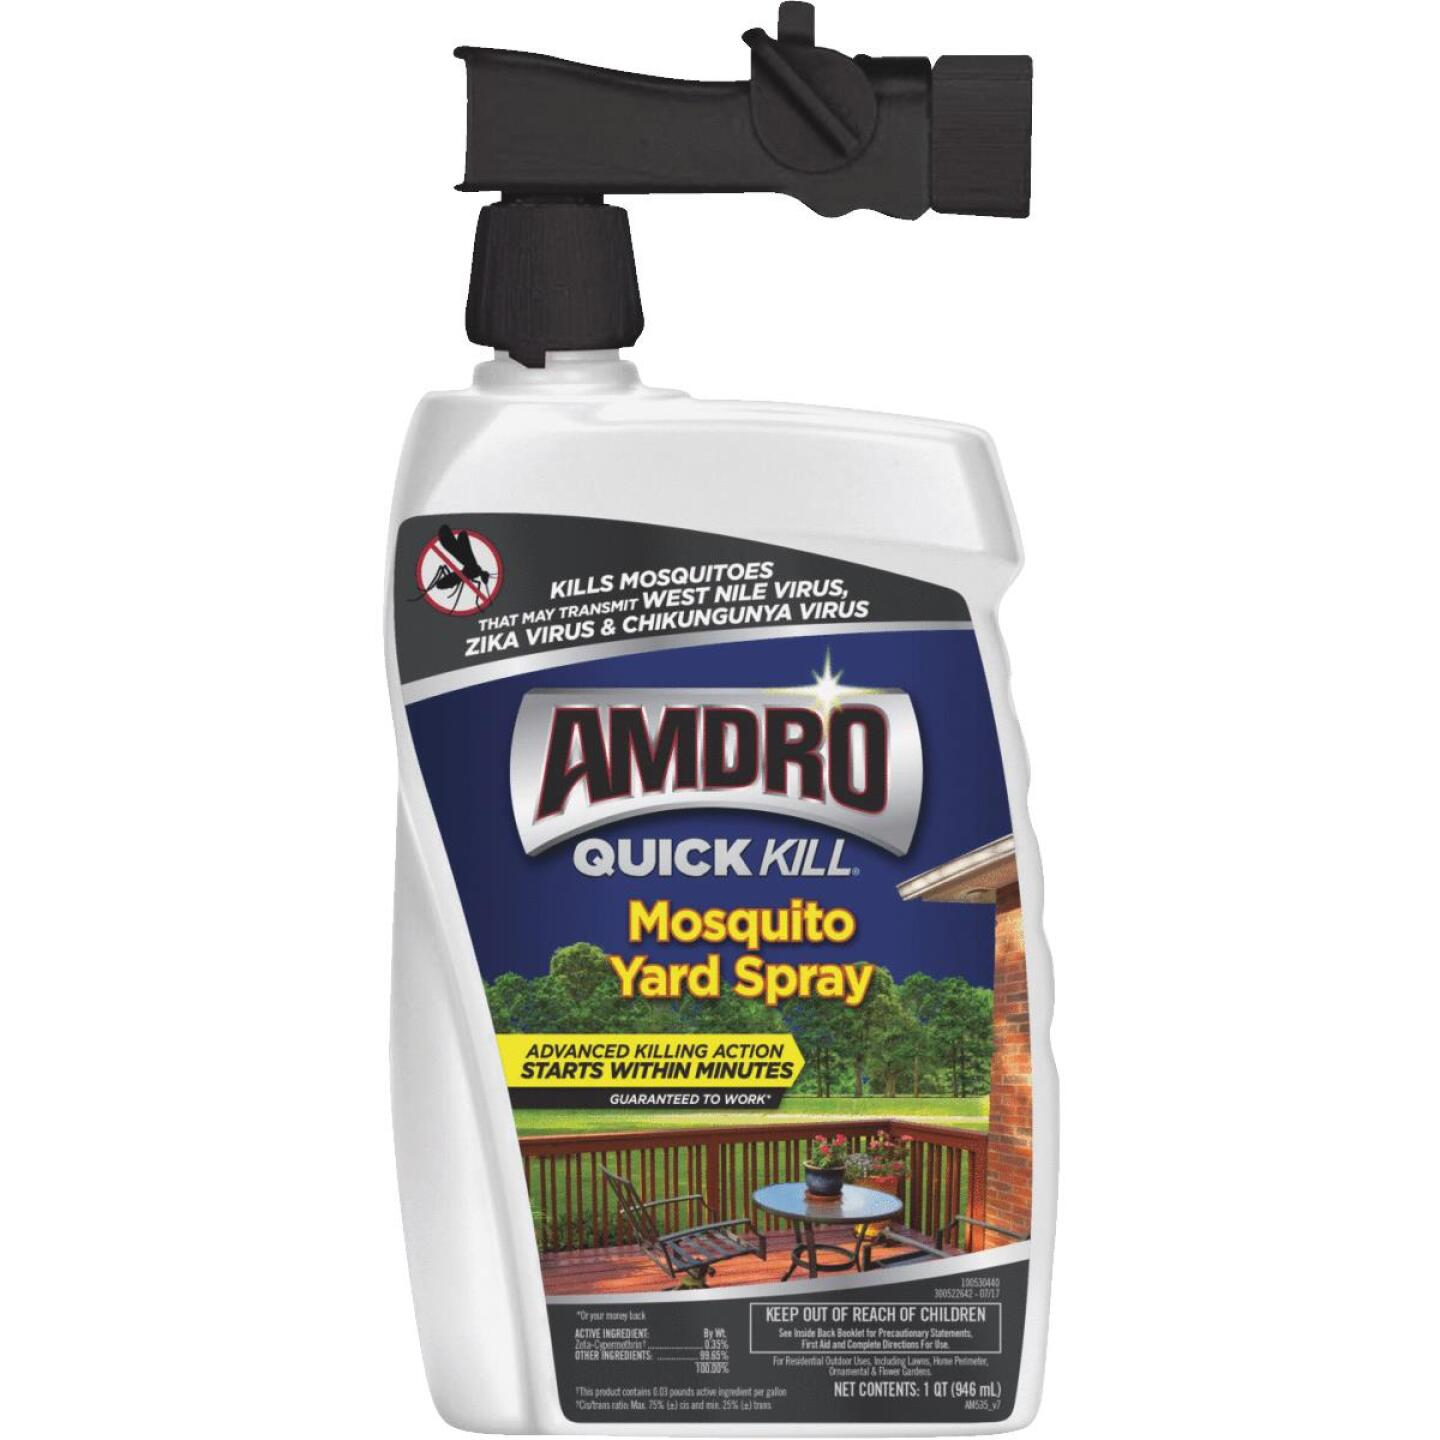 Amdro Quick Kill 32 Oz. Ready To Spray Hose End Mosquito Killer Yard Spray Image 1